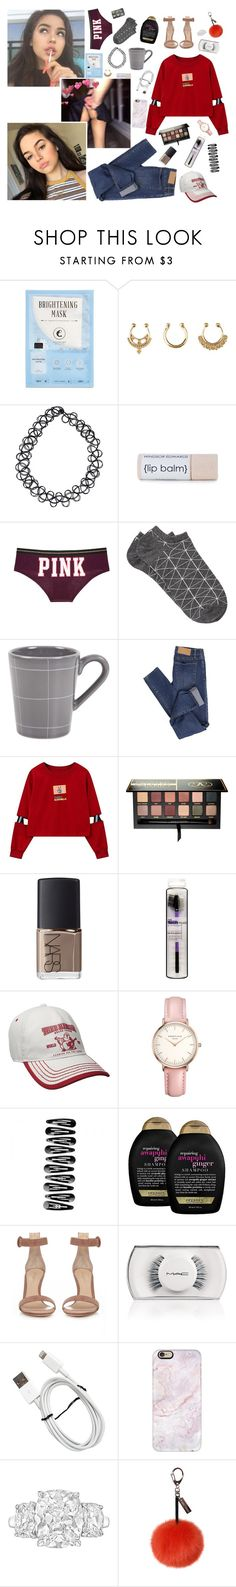 """""""xo 11/07/16 } 3:42pm  xo"""" by d3structionxx ❤ liked on Polyvore featuring Kocostar, Charlotte Russe, JFR, Victoria's Secret, Witchery, Zara Home, Cheap Monday, Anastasia Beverly Hills, NARS Cosmetics and Topshop"""